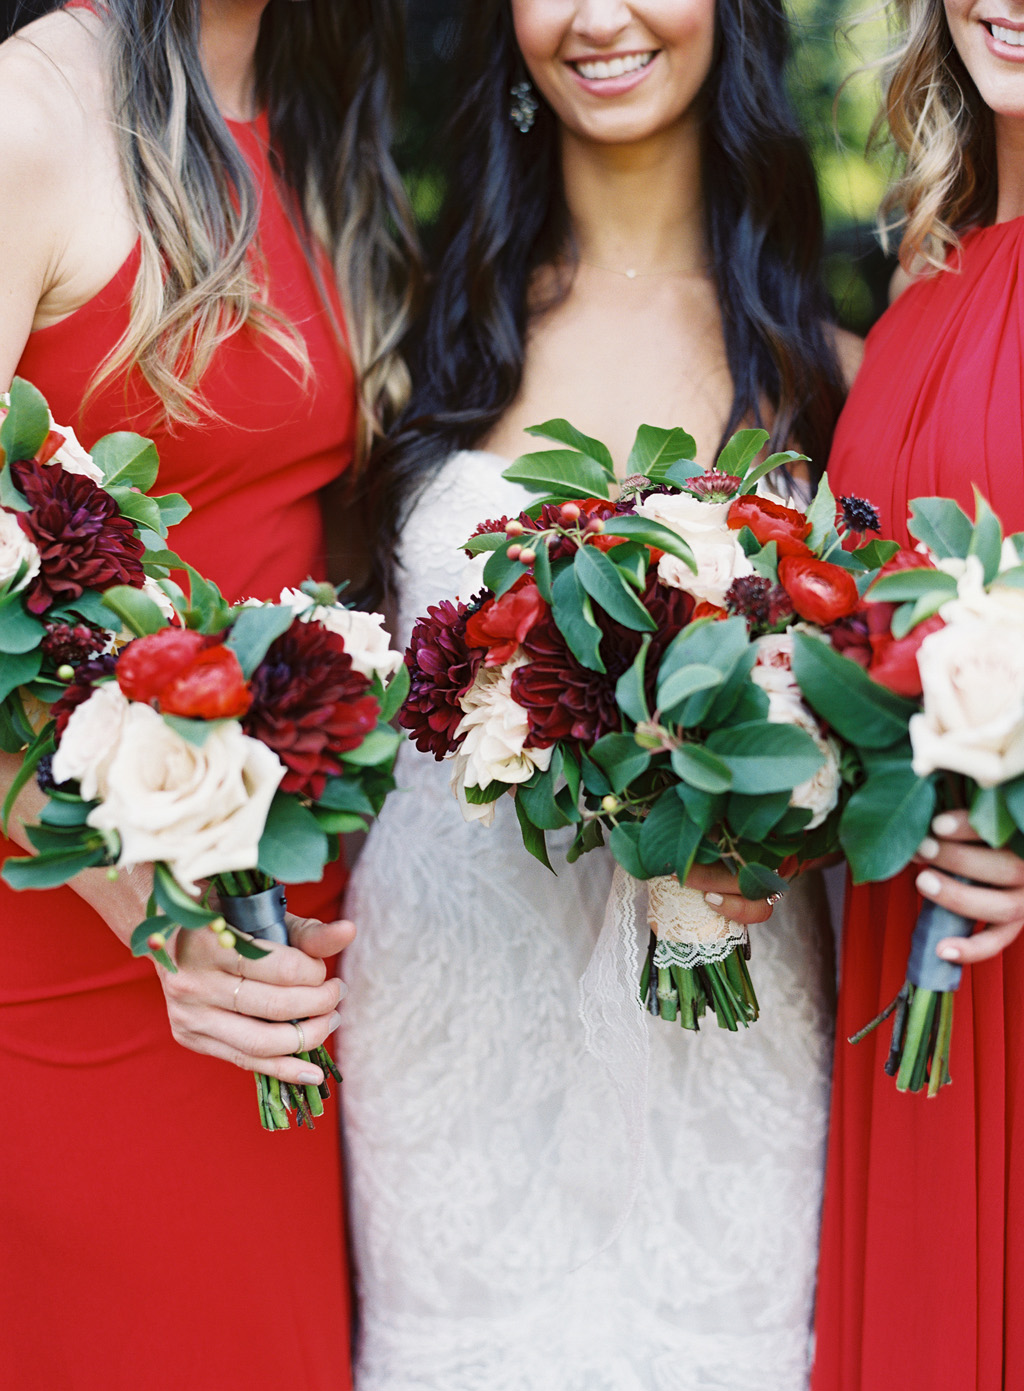 wedding bouquets shot by a Napa wedding photographer on film.